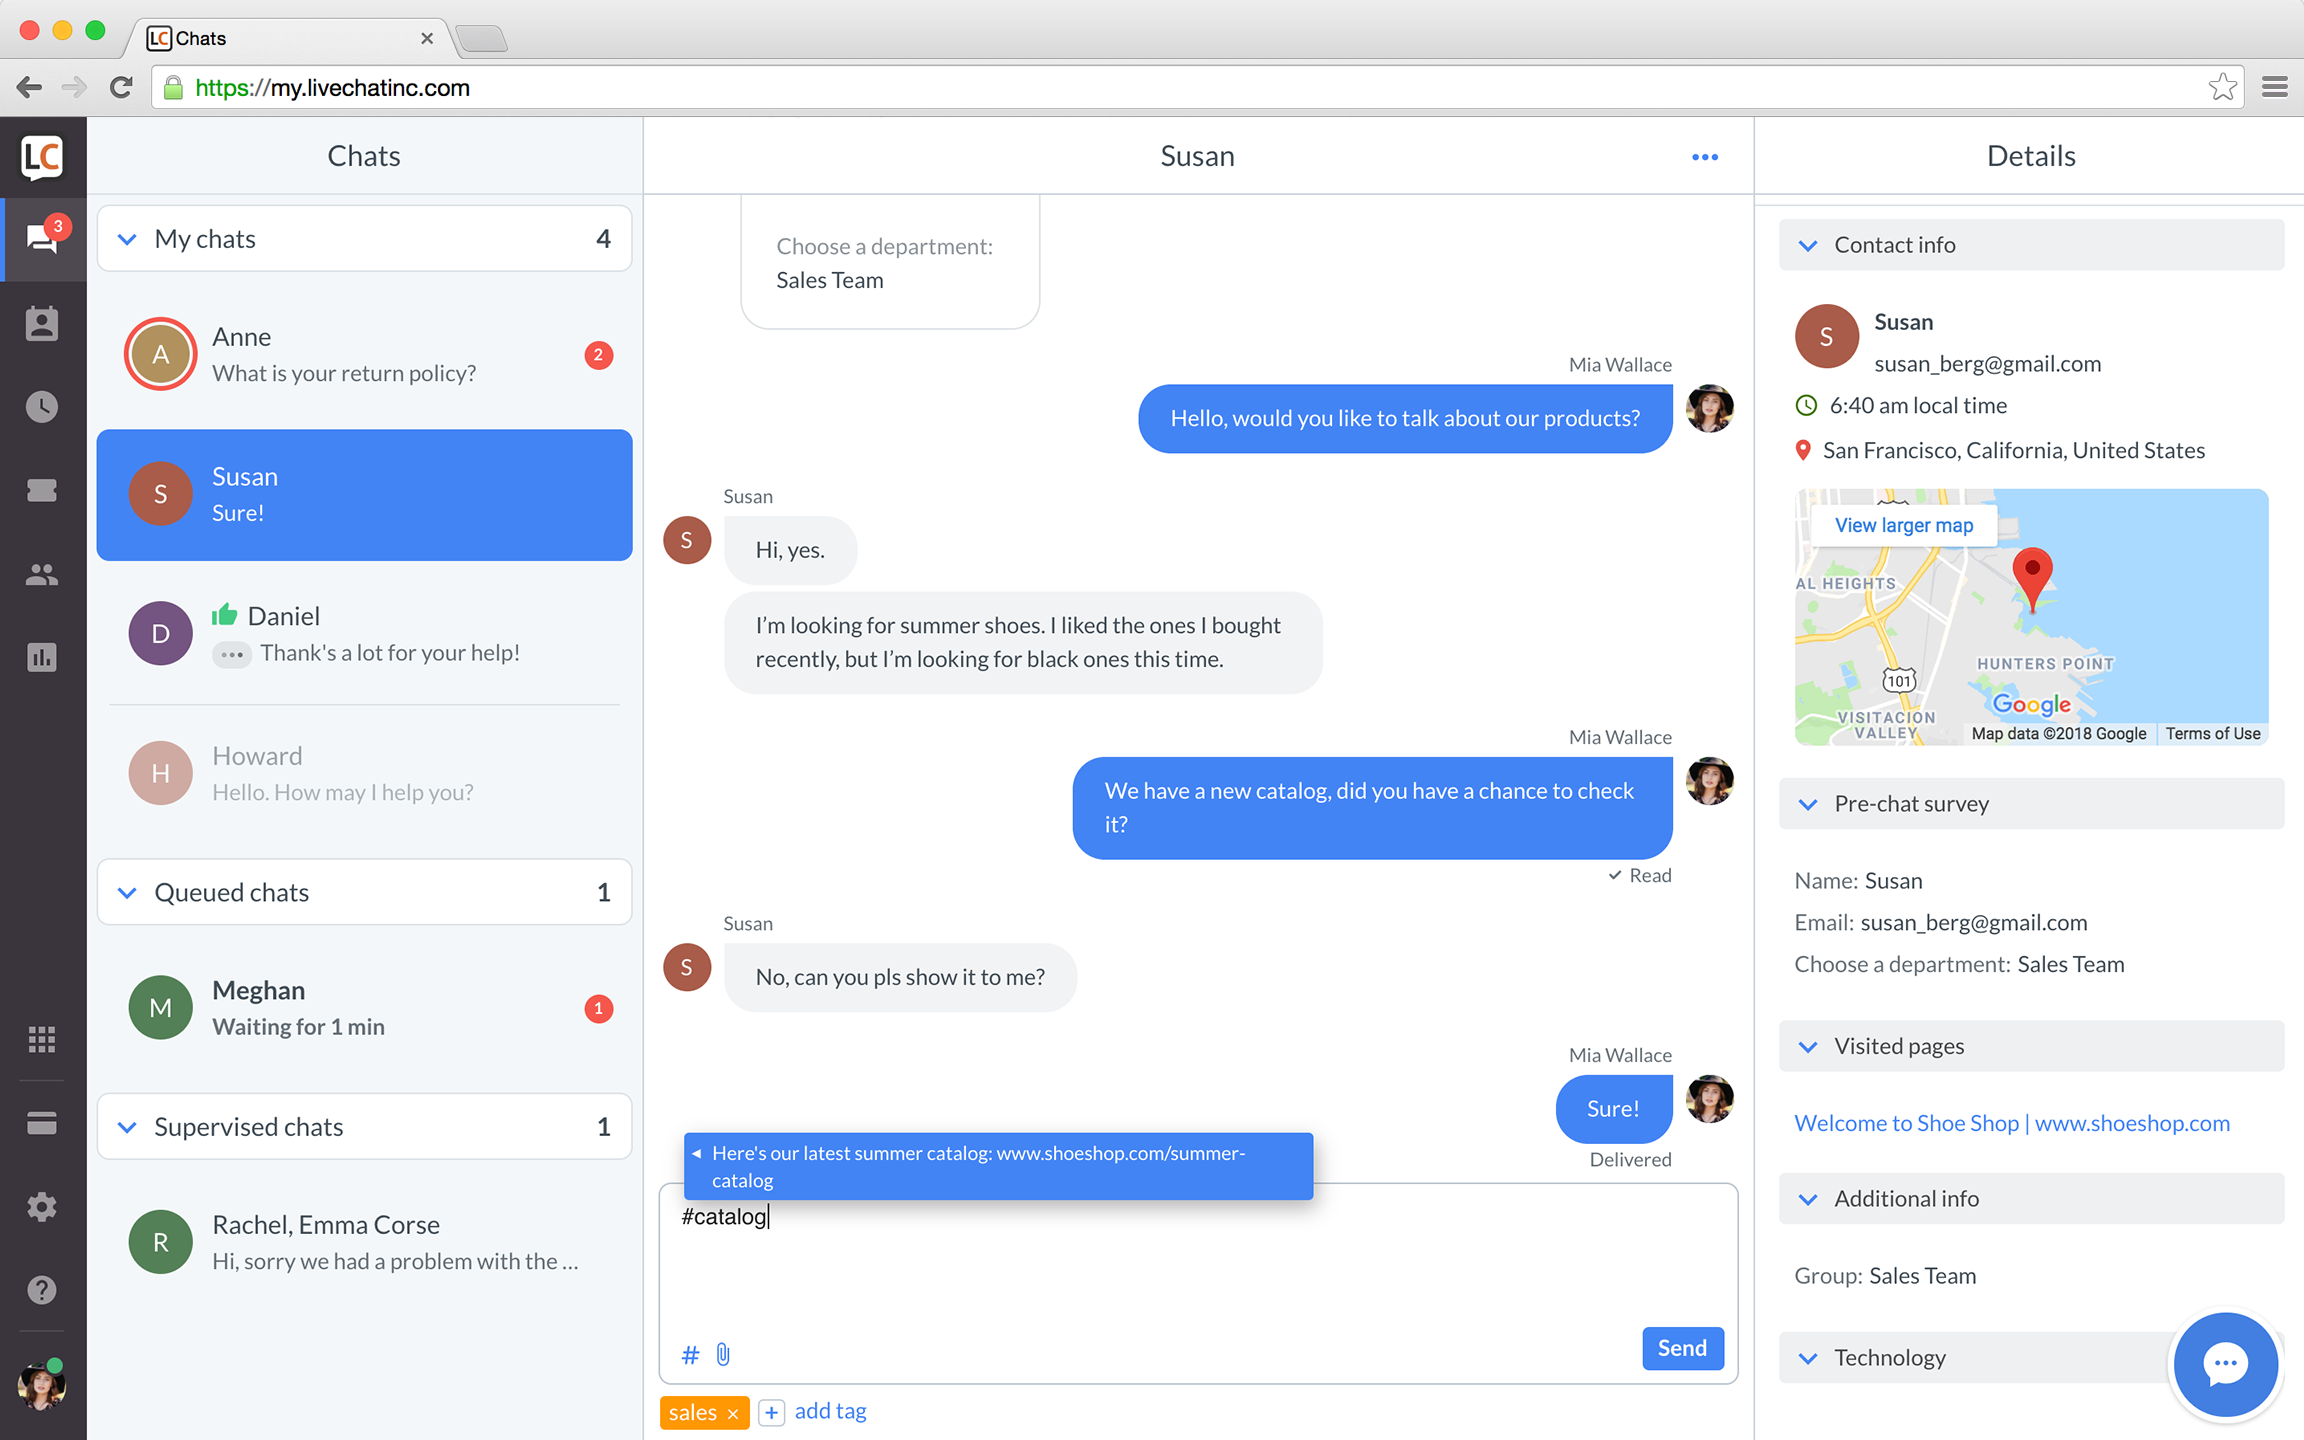 Sneak peek of LiveChat's new platform